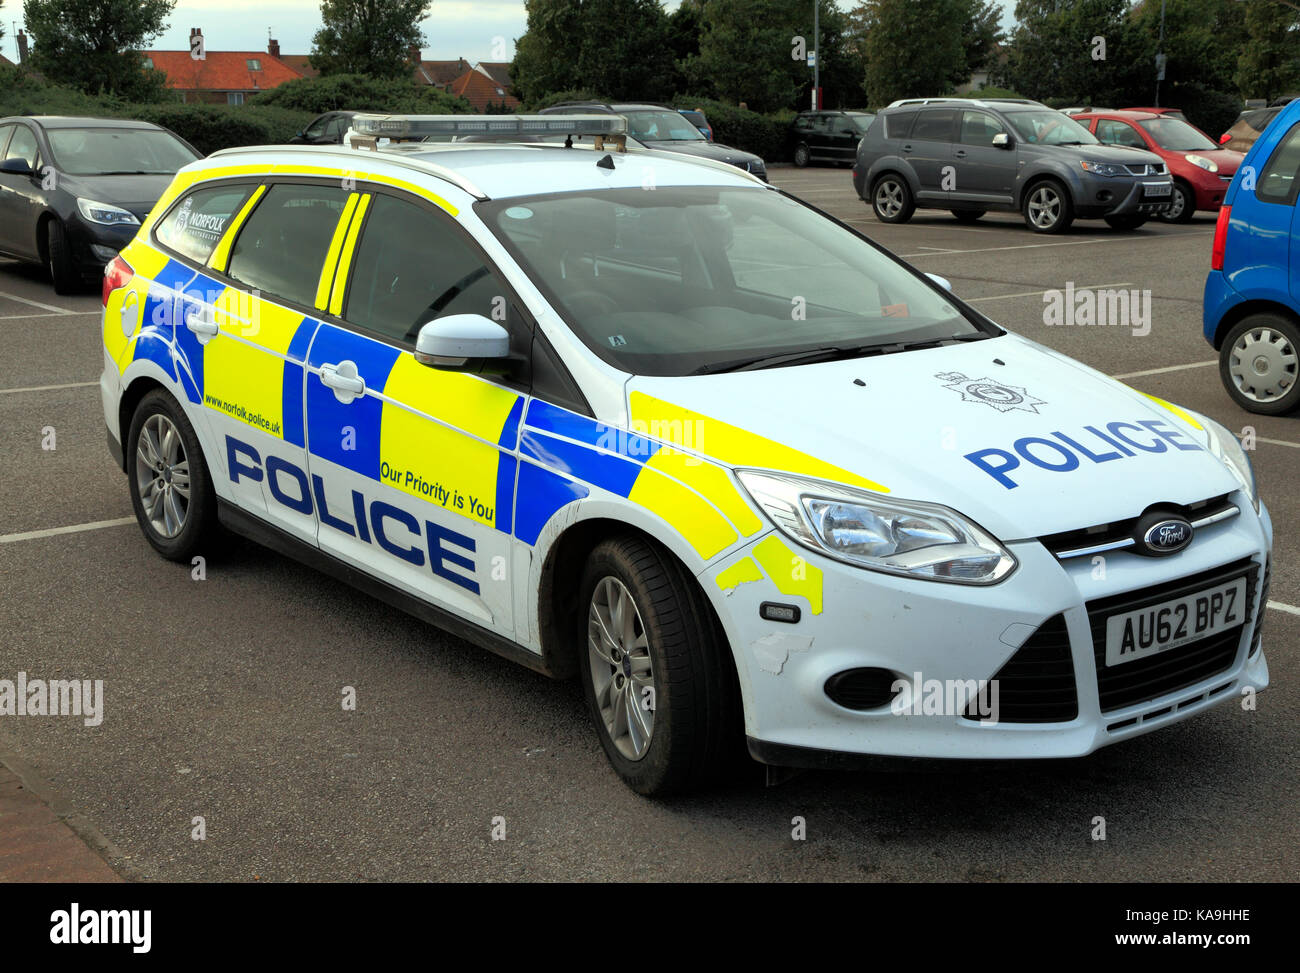 Police Car, UK, badly parked, overhanging parking bay, Norfolk Constabulary, vehicle, vehicles, cars, England, UK - Stock Image